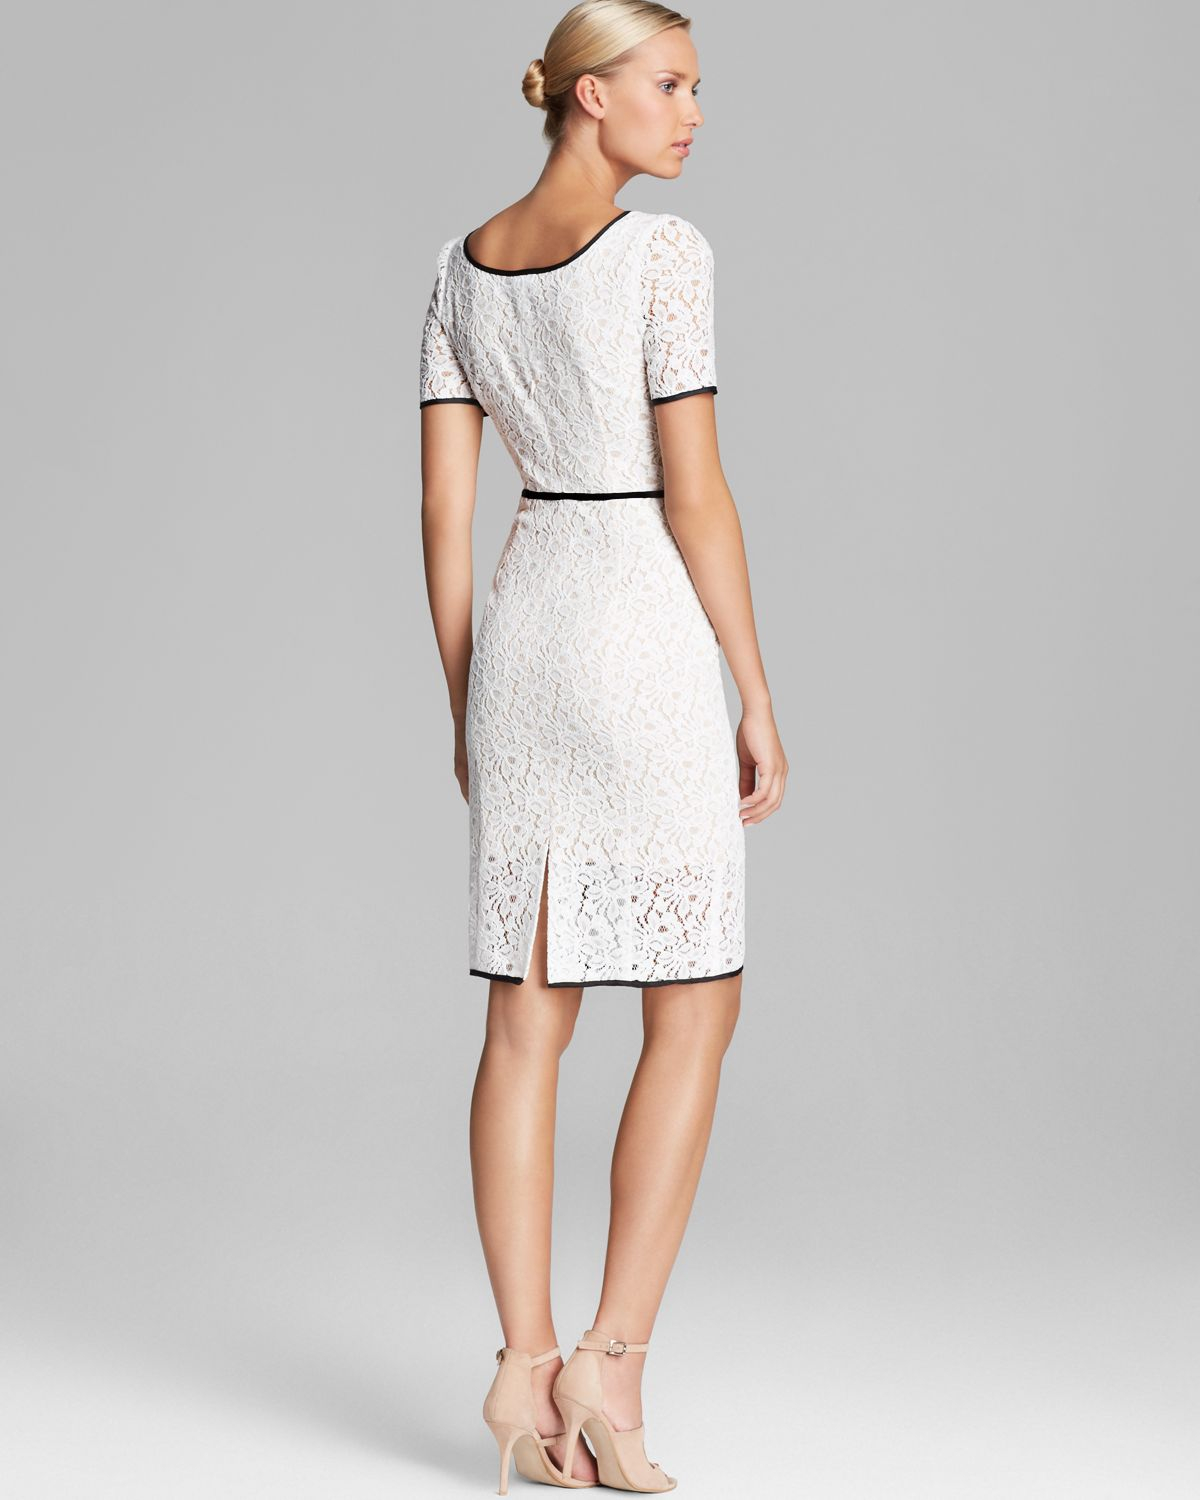 short white lace sheath dress